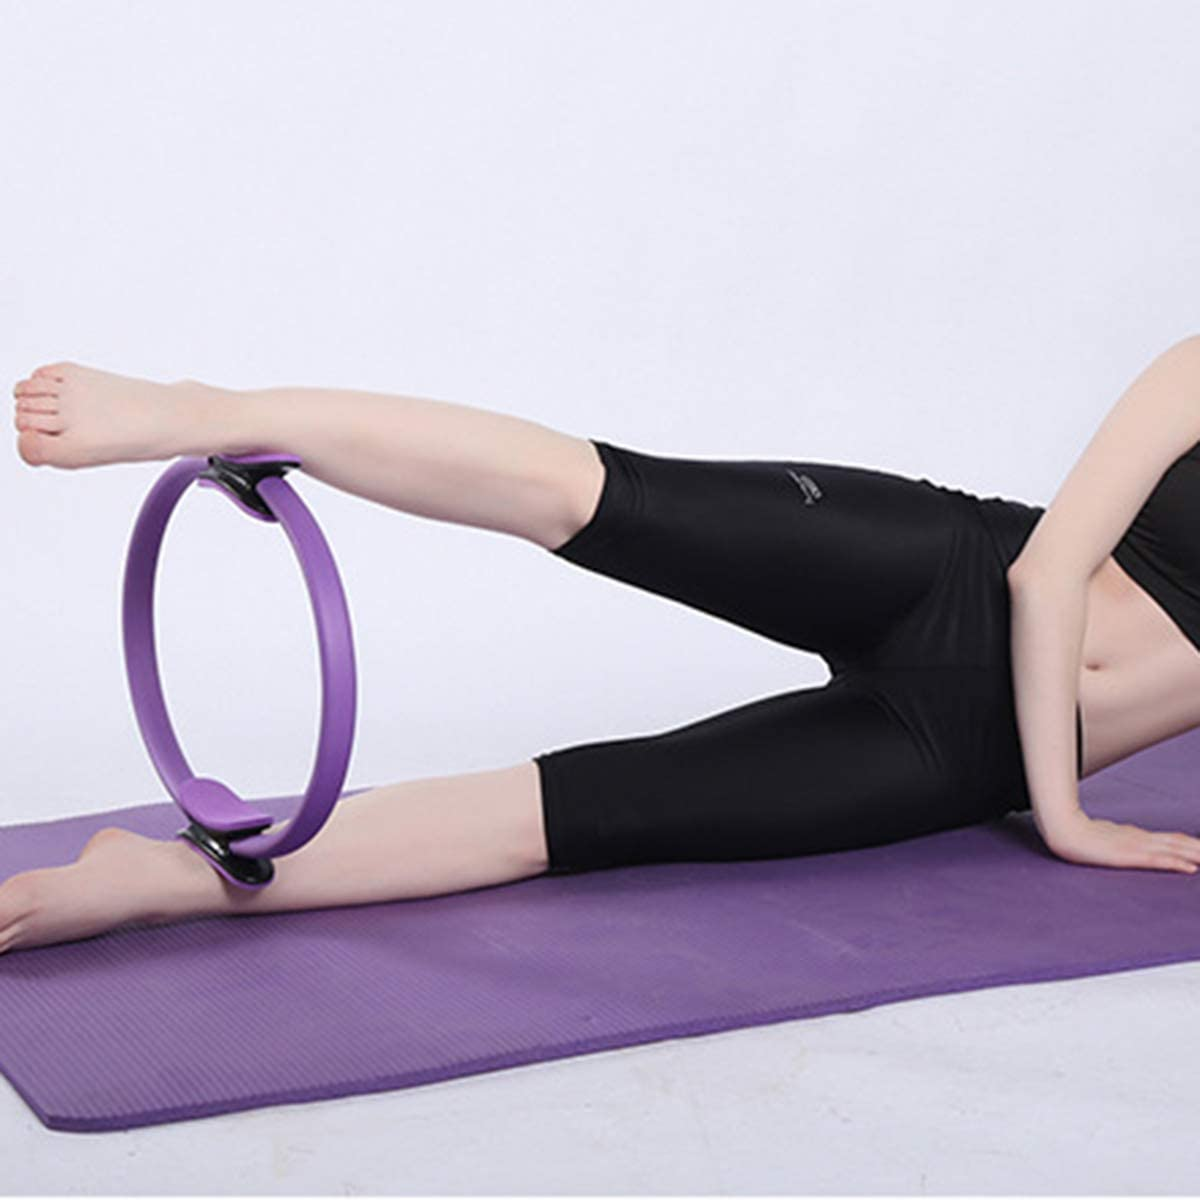 Ruiqas Pilates Resistance Ring Yoga Pilates Circle Portable Fitness Pilates Ring Lightweight Pilates Ring for Toning Abs Thighs and Legs